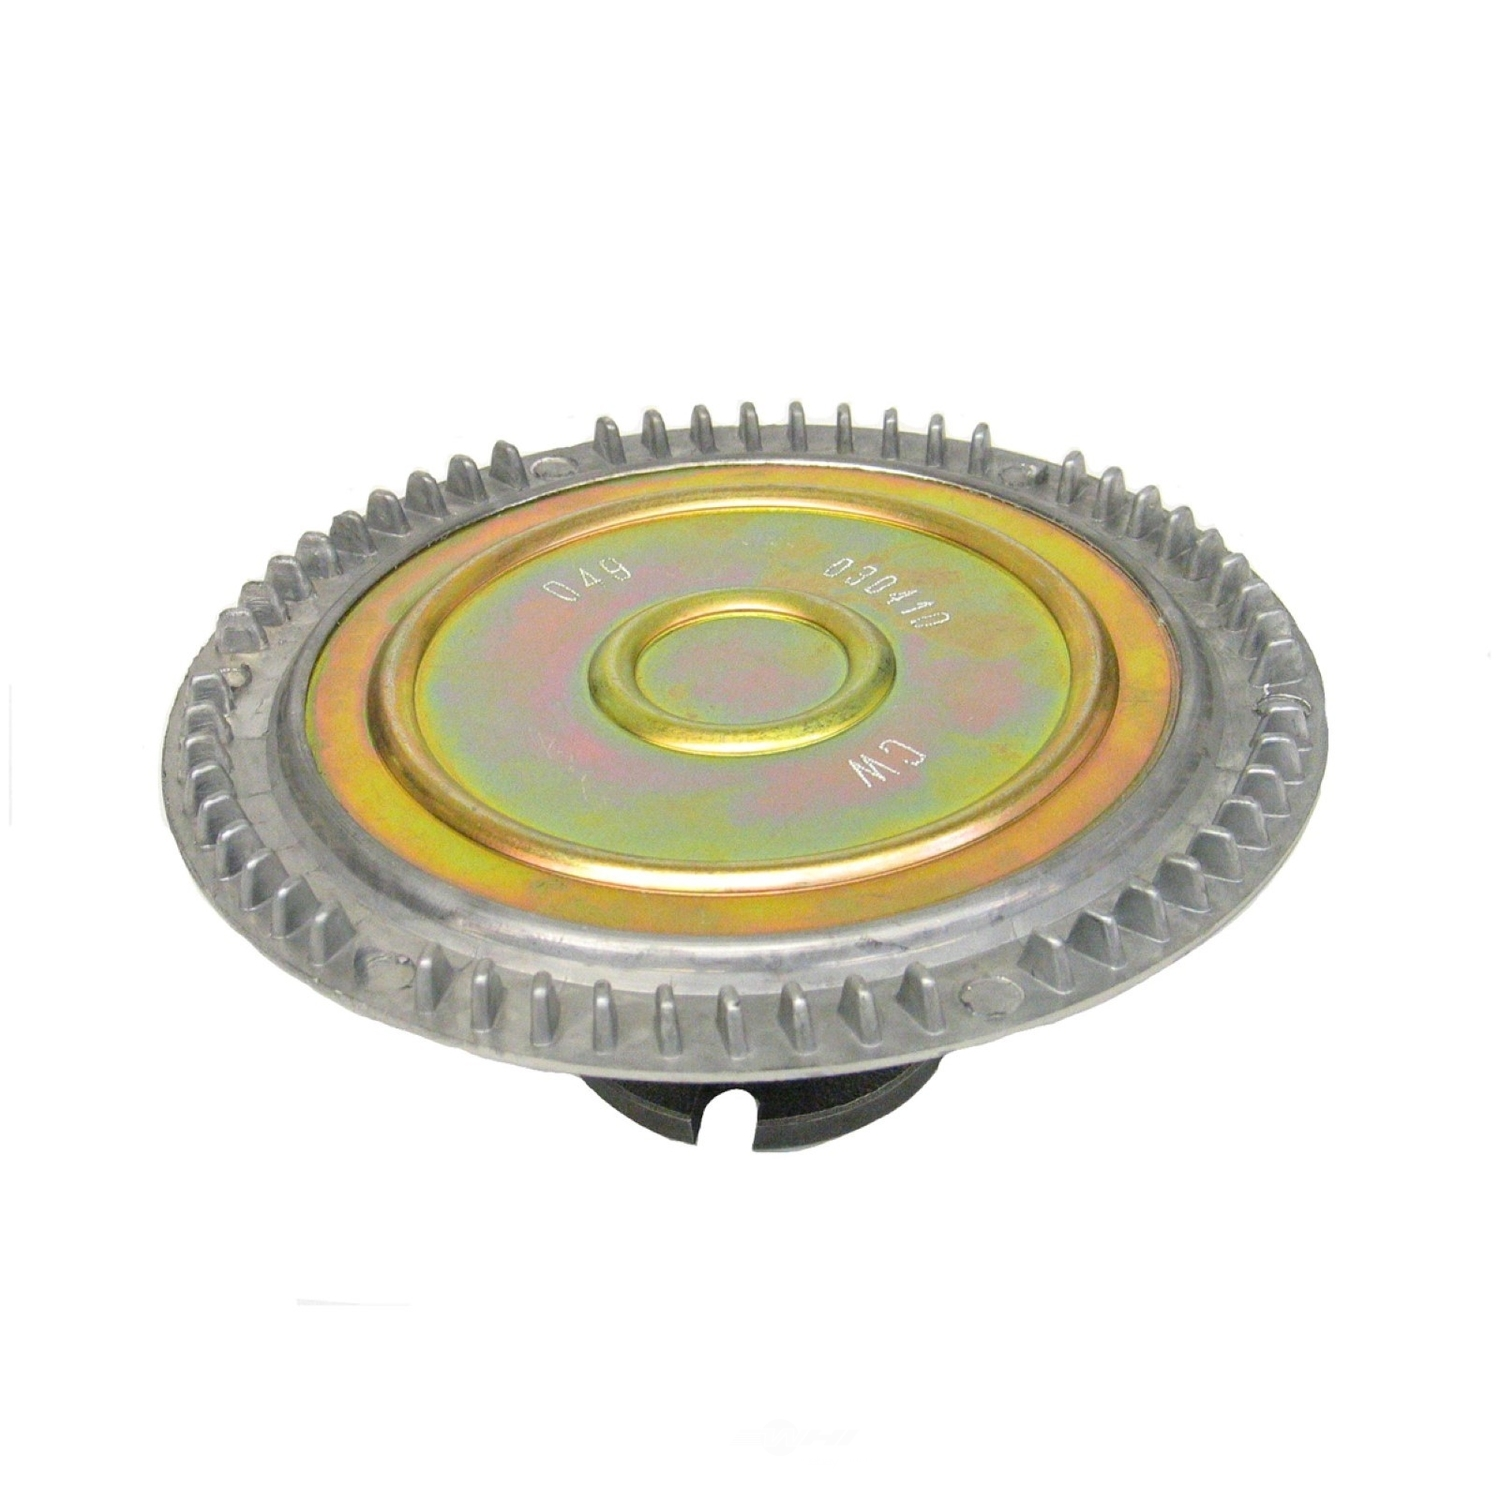 US MOTOR WORKS - Engine Cooling Fan Clutch - DER 21049